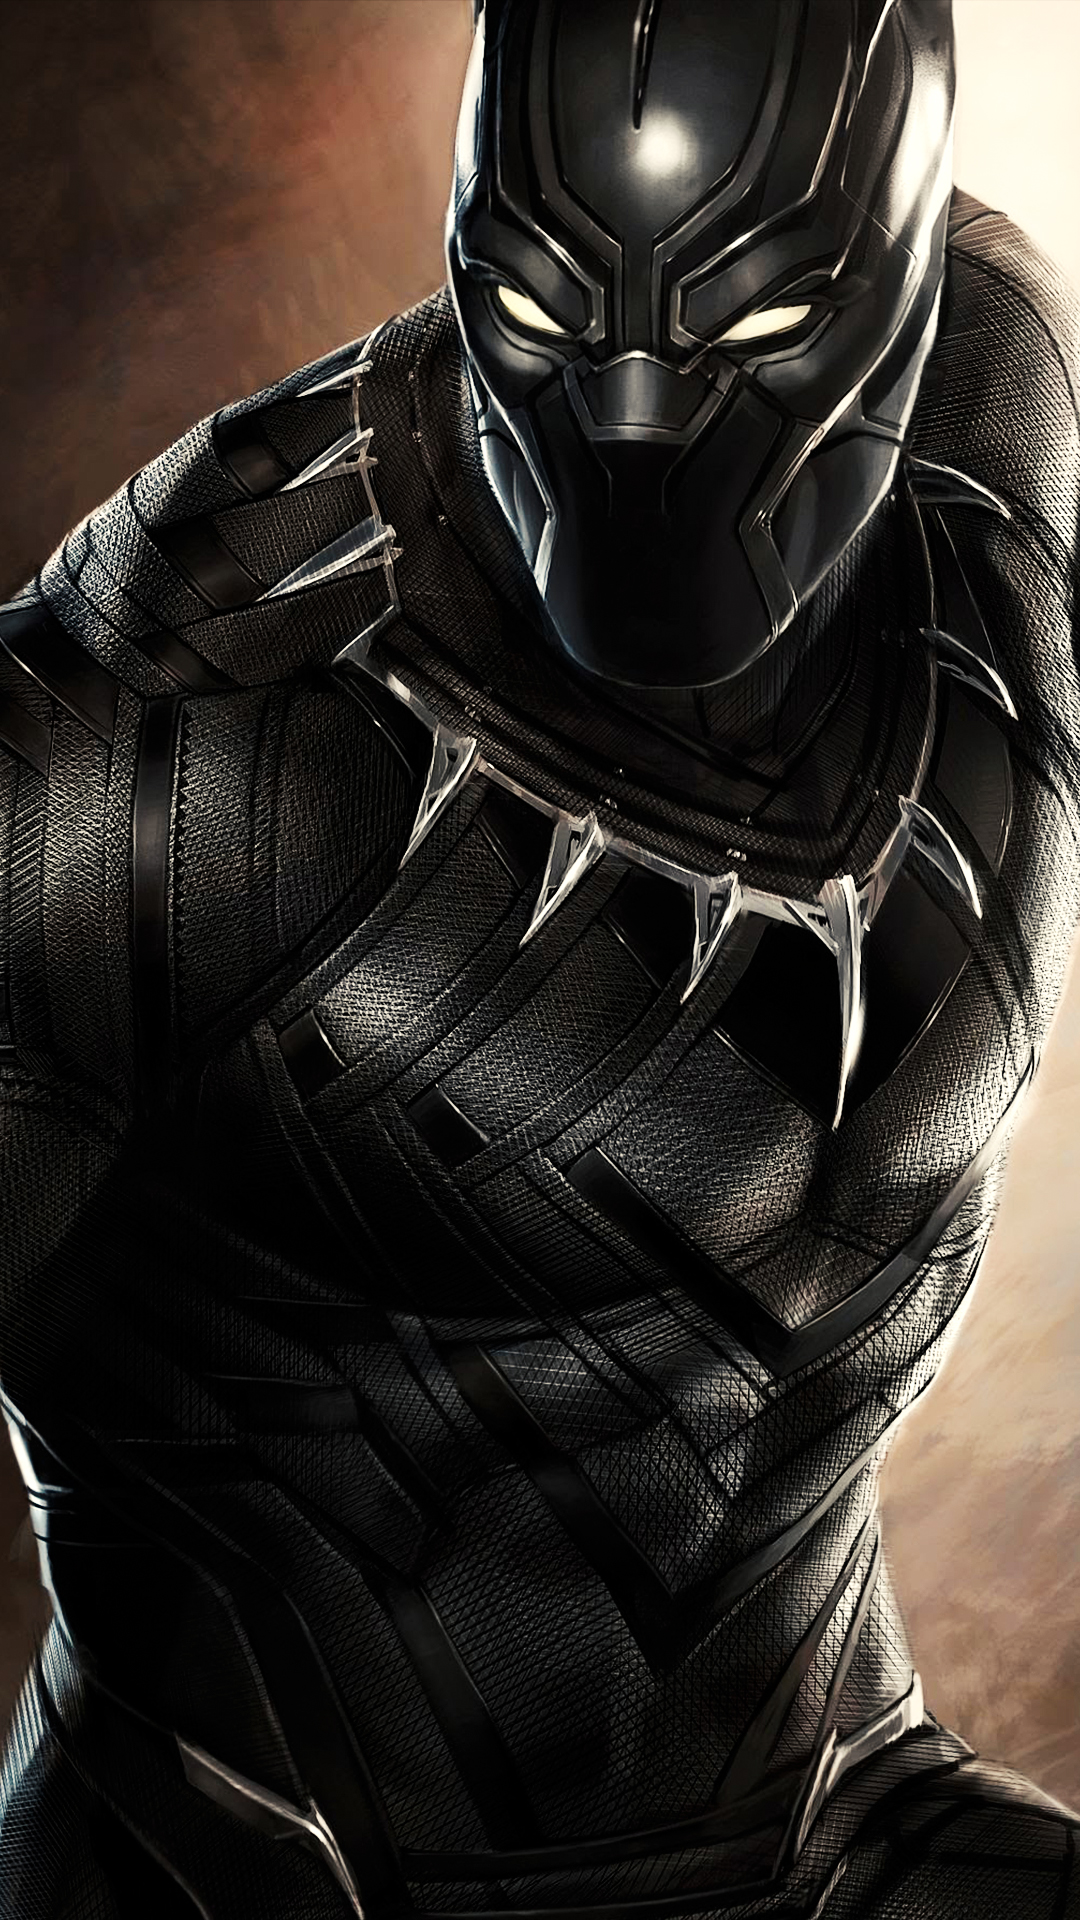 Black Panther 1080 X 1920 Hd Wallpaper